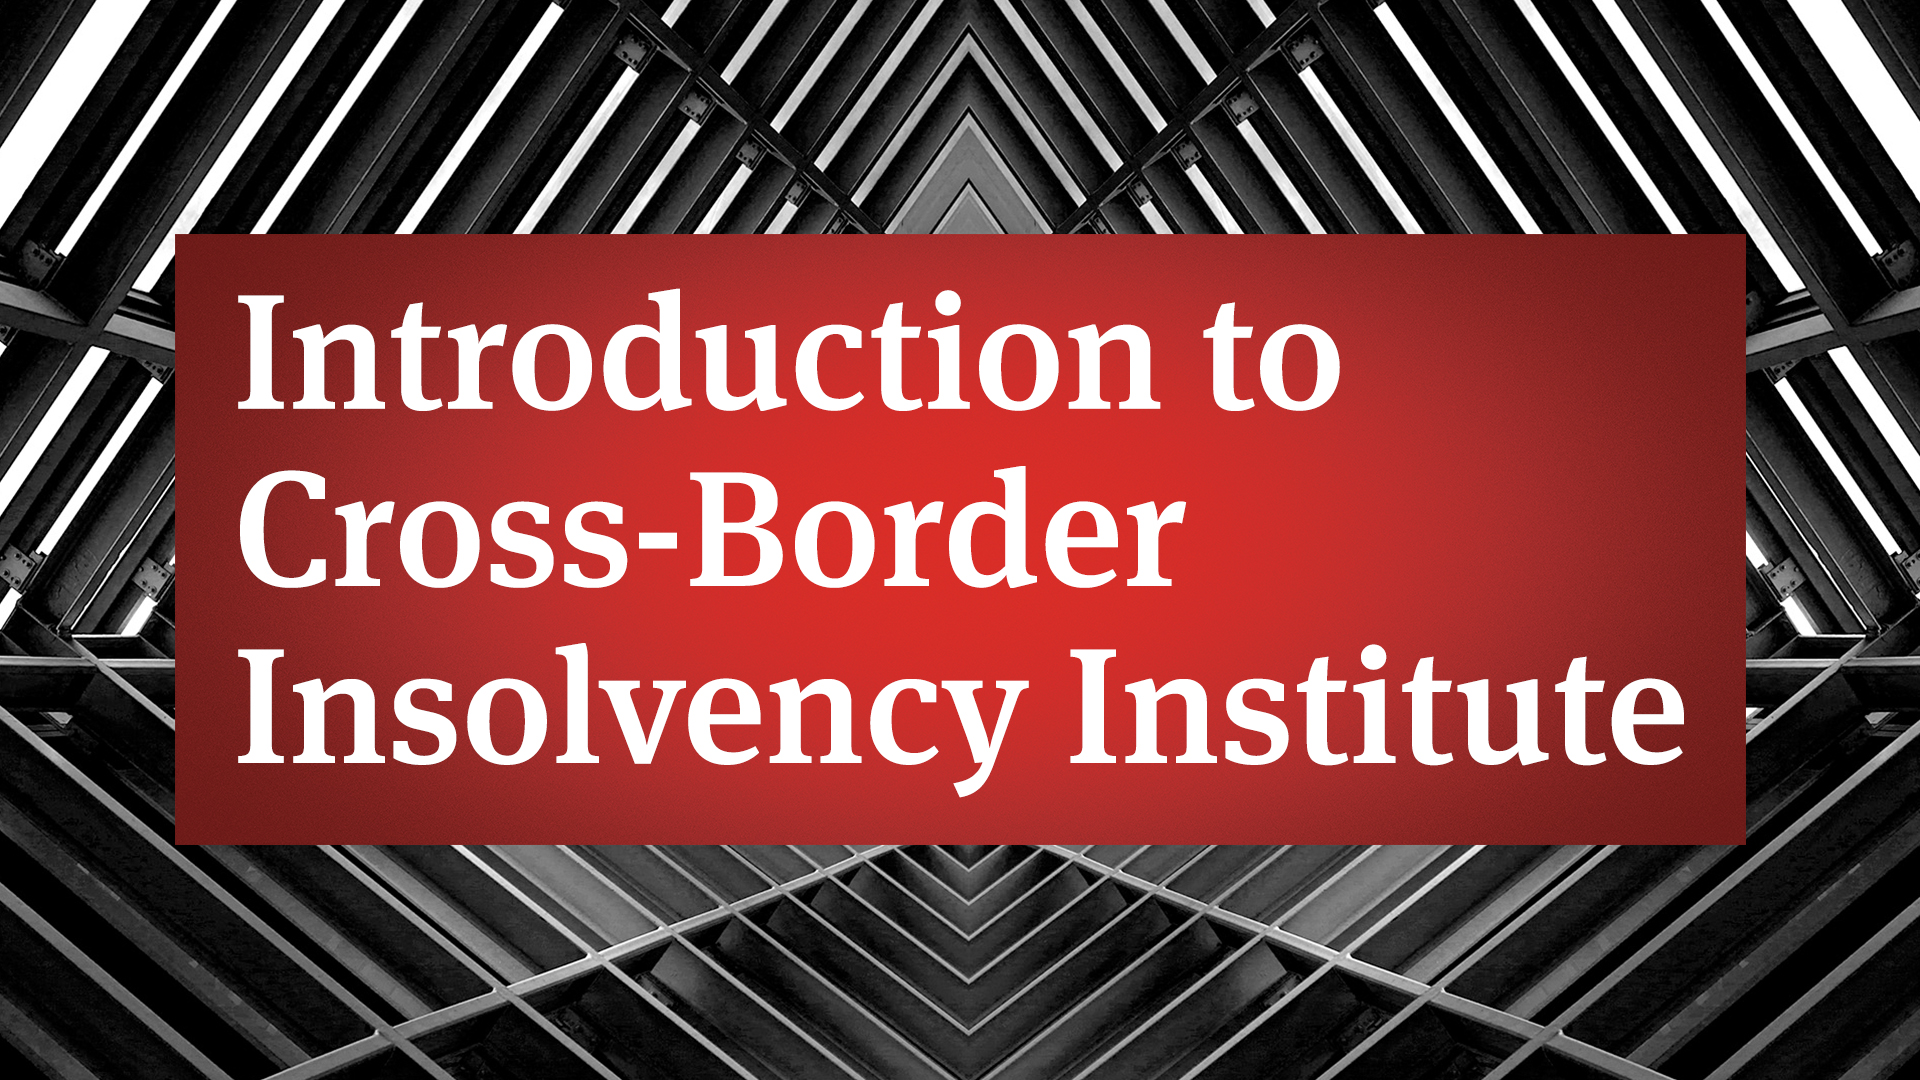 Introduction to Cross-Border Insolvency Institute